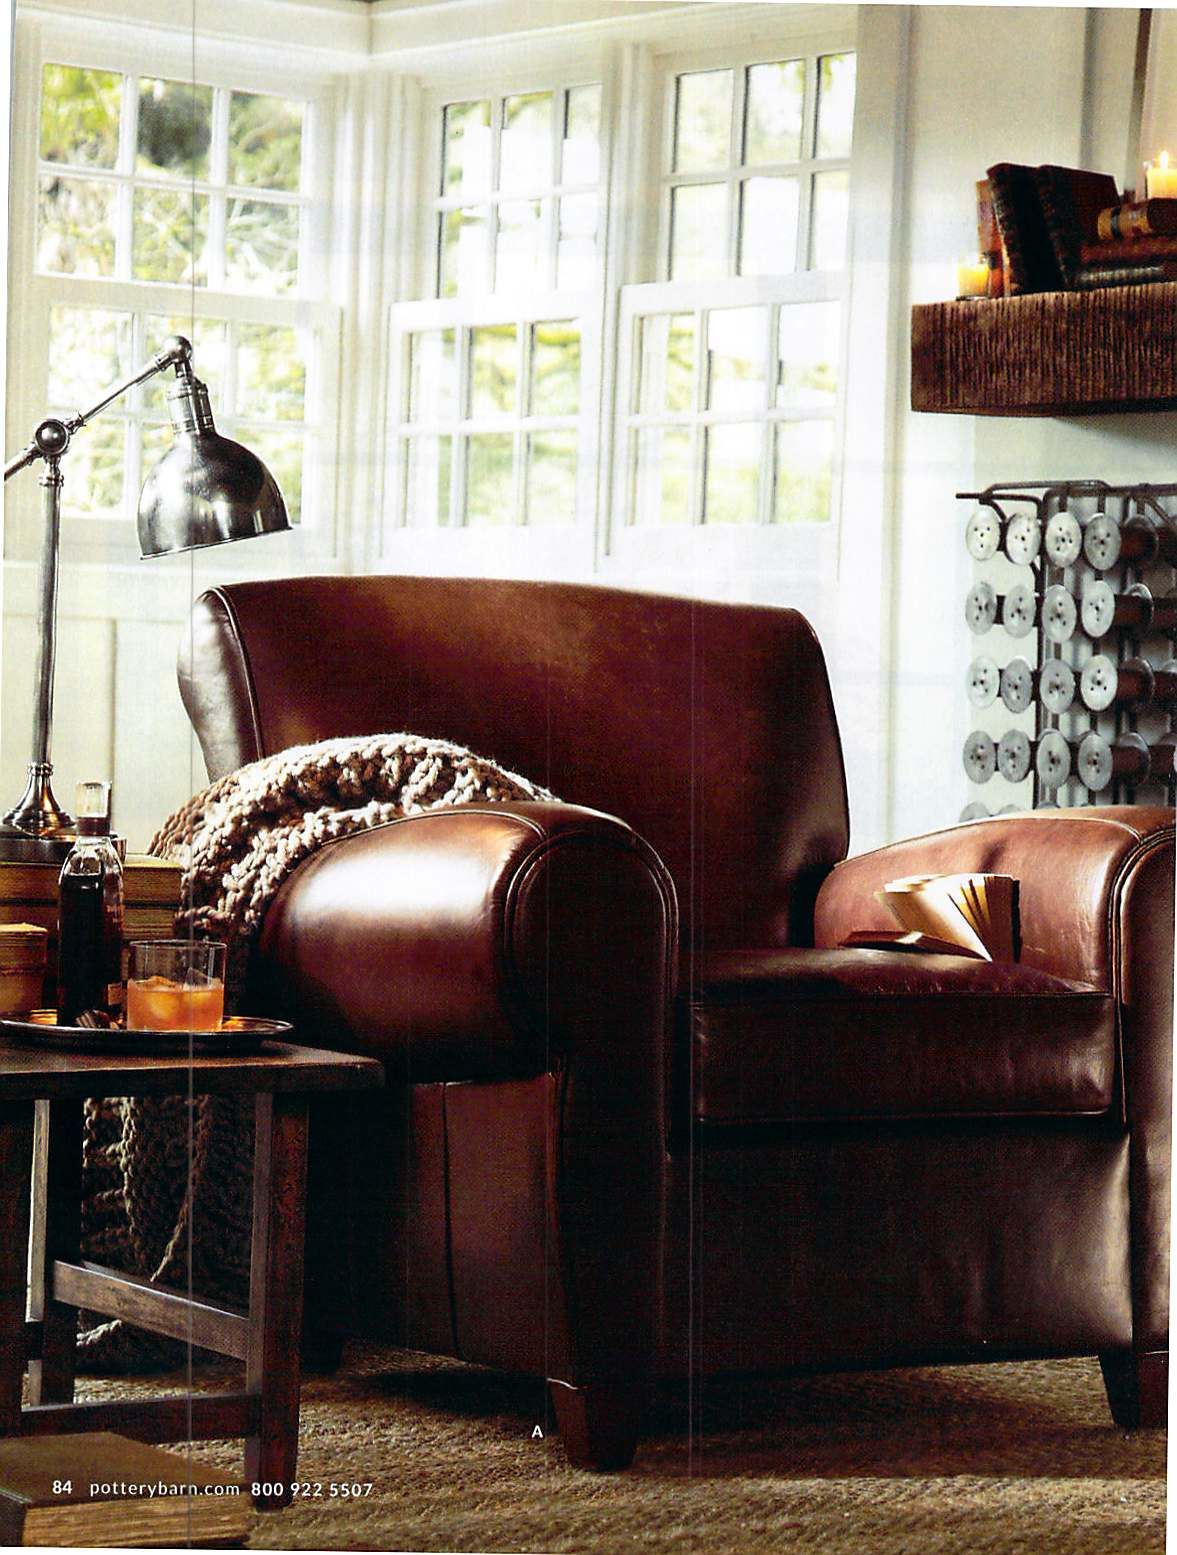 Pottery Barn March 2013 love the shelf on the wall. looks